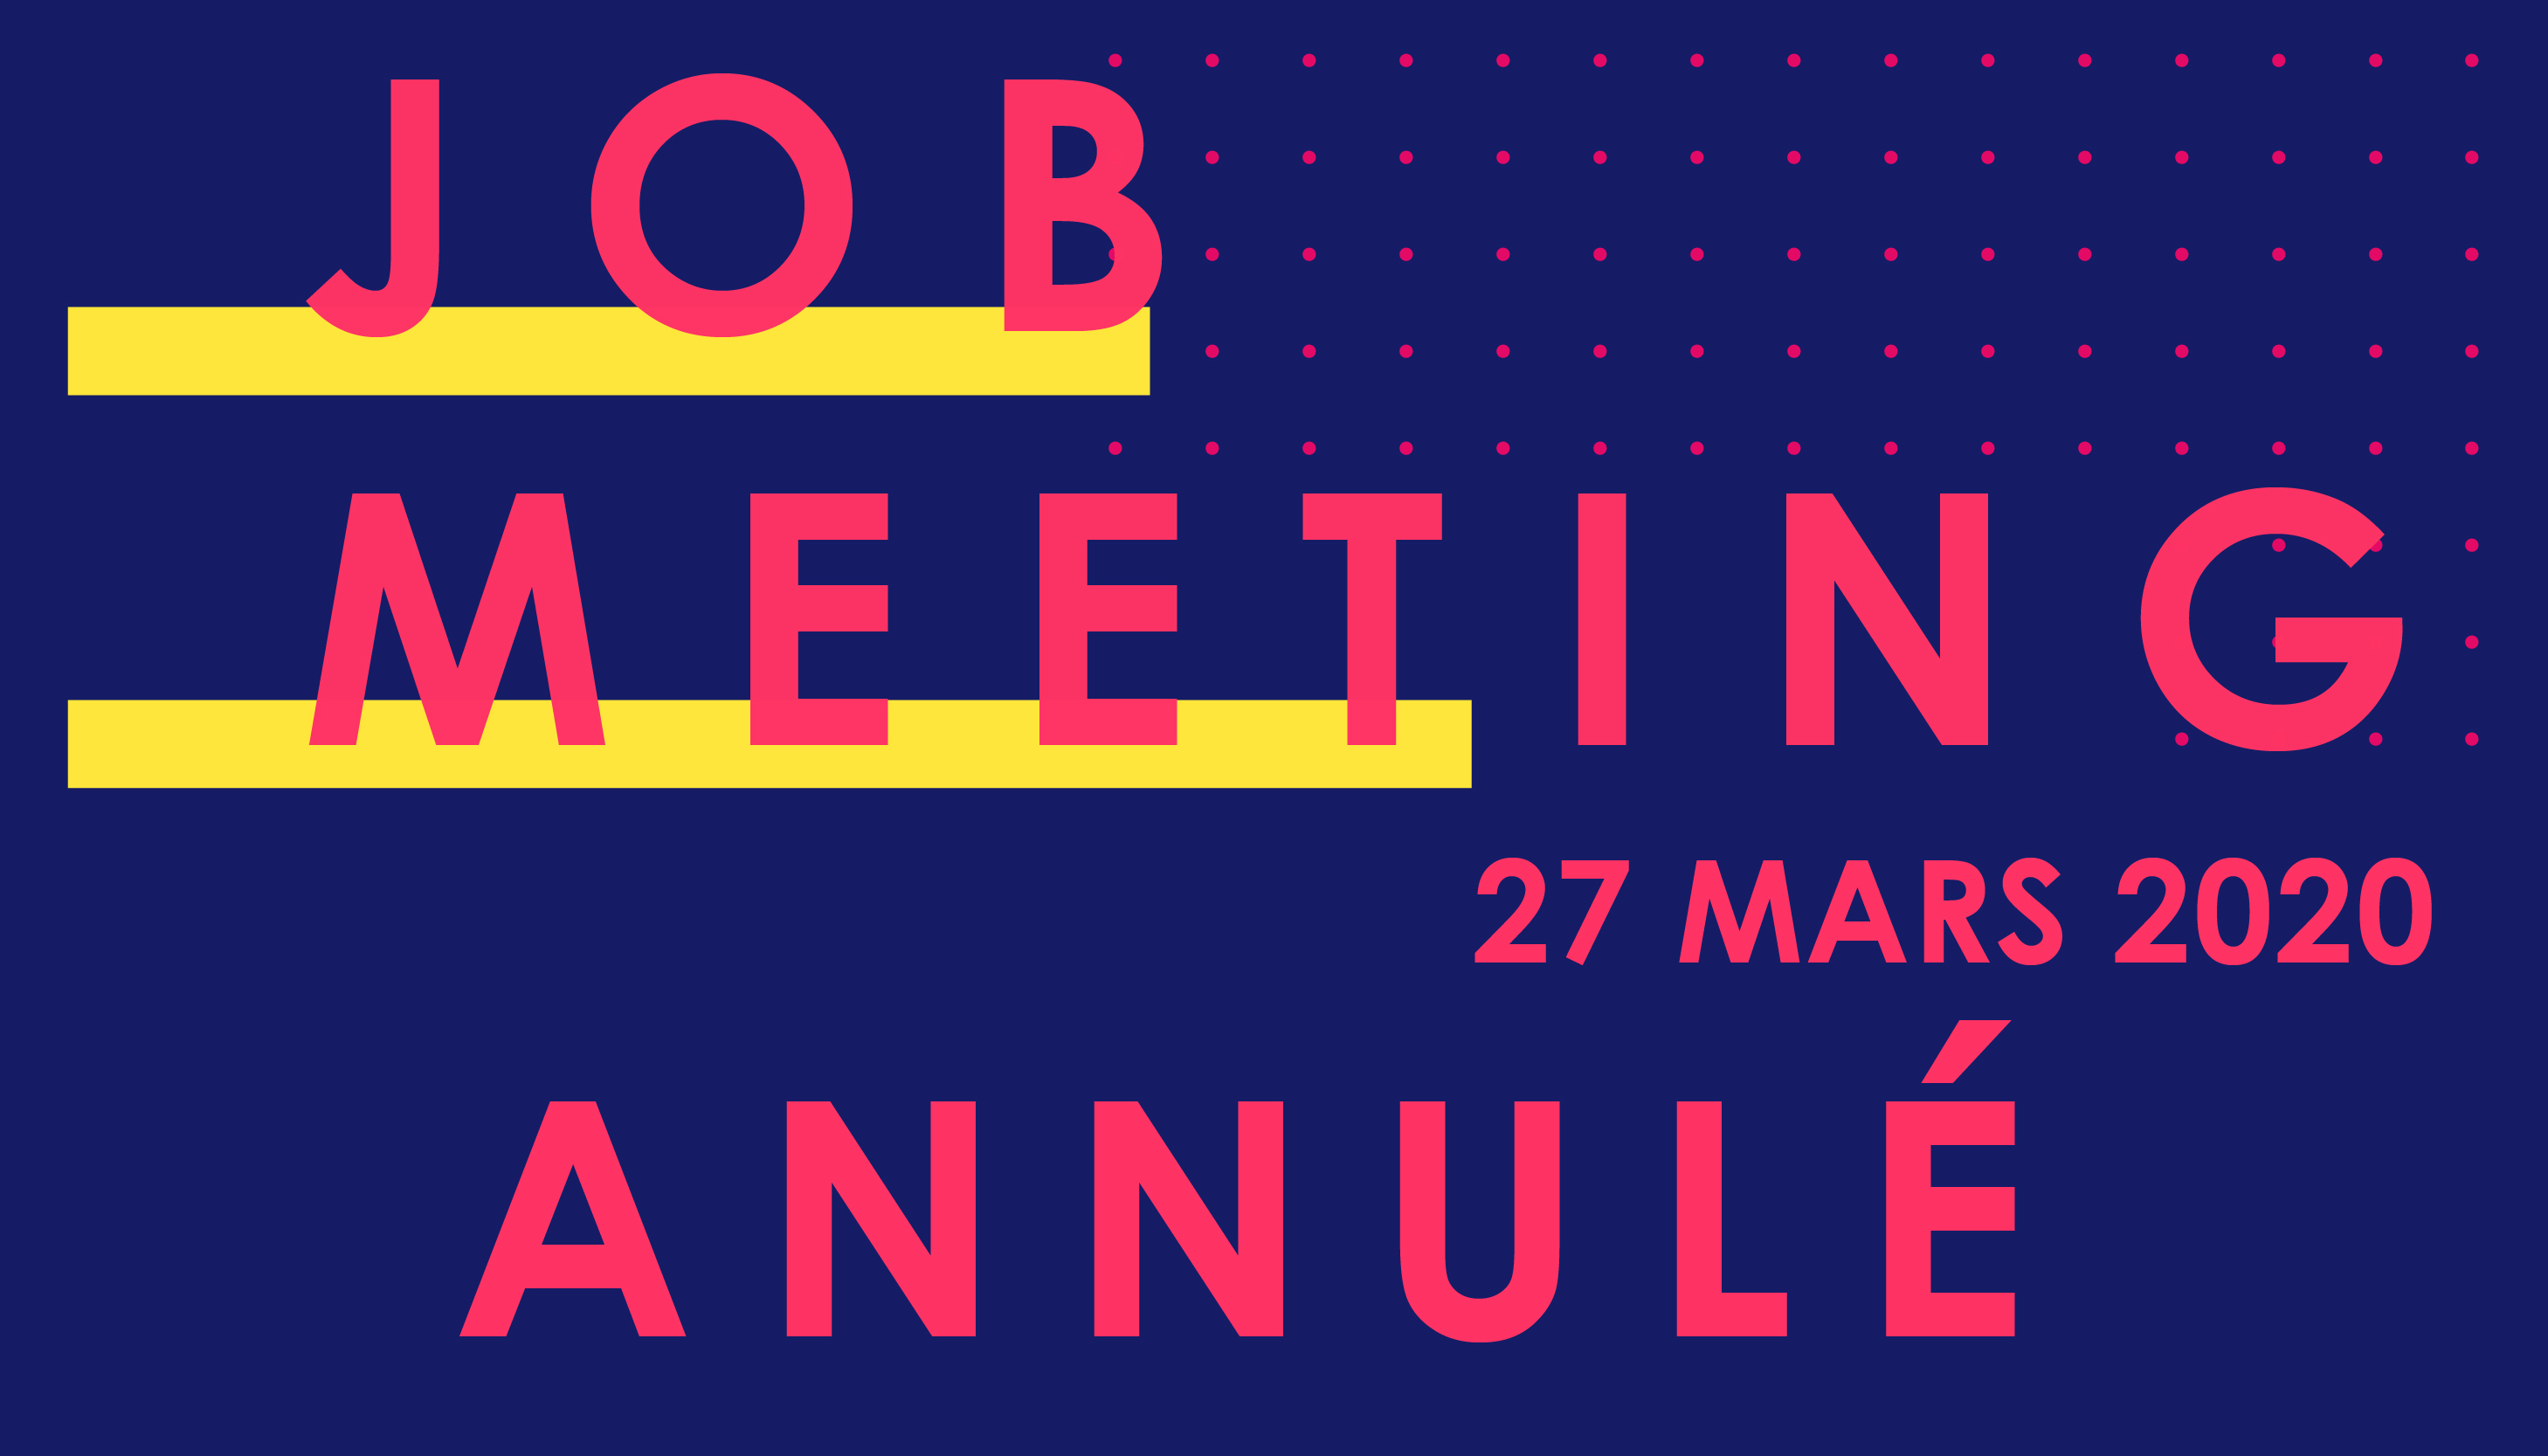 JOB MEETING 27 MARS 2020 ANNULÉ